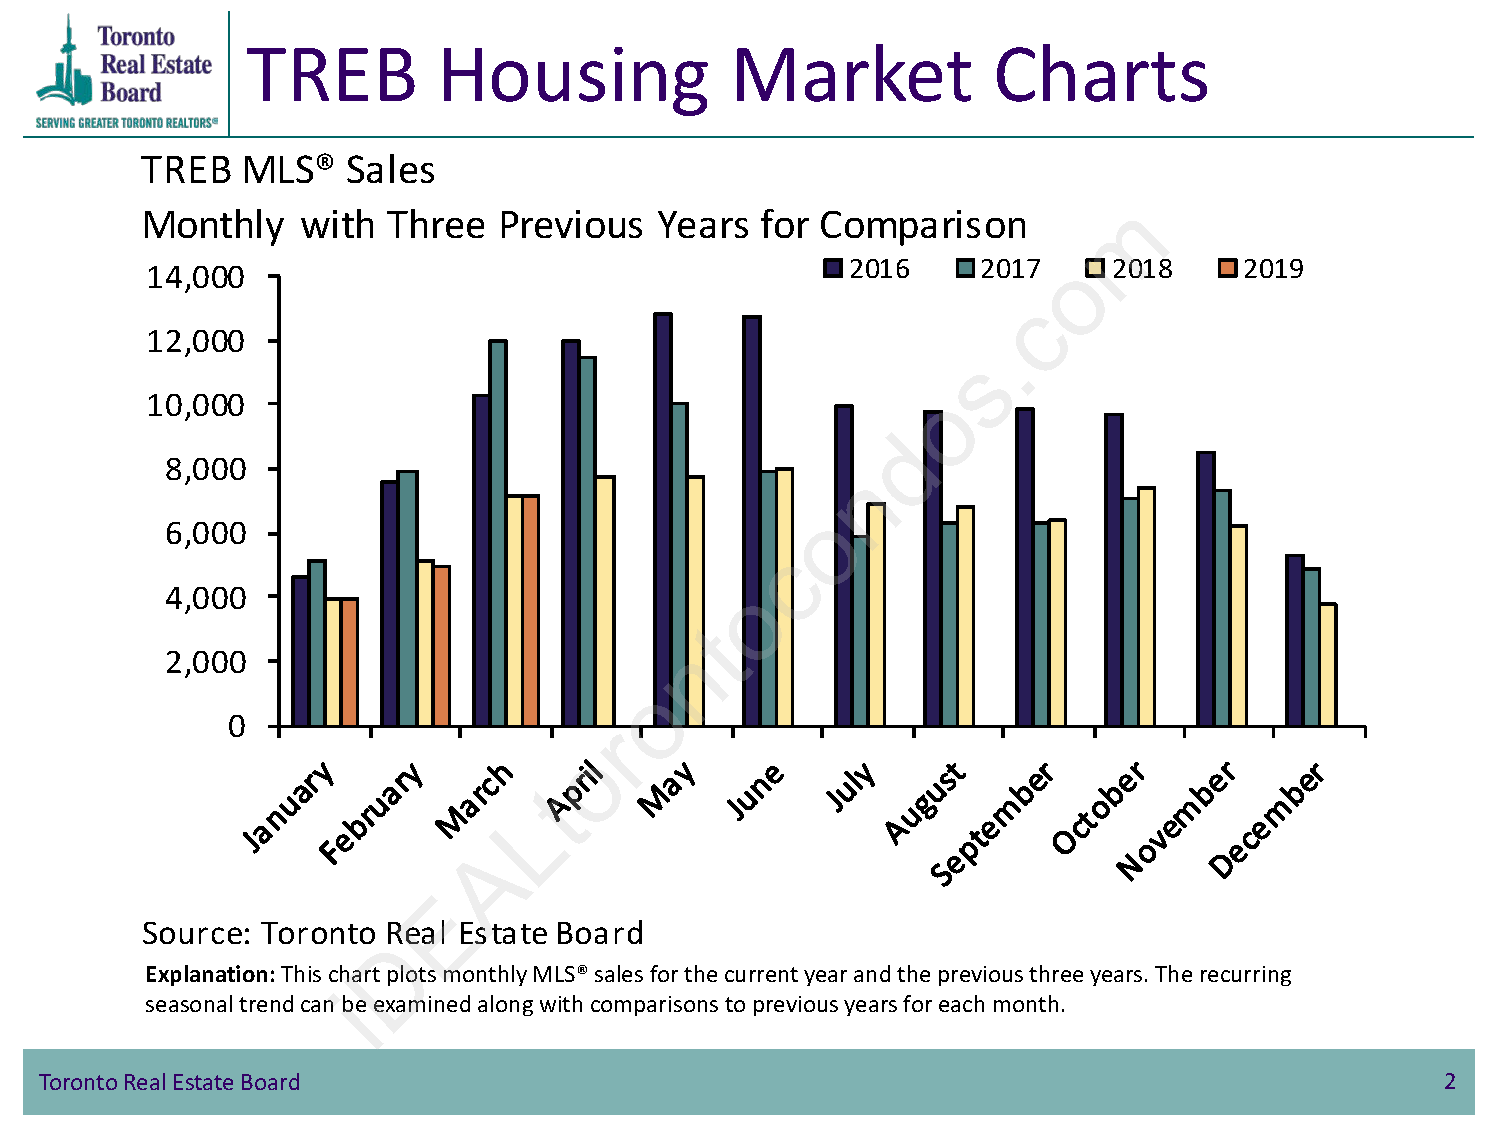 TREB Housing Market Charts - Toronto MLS Sales